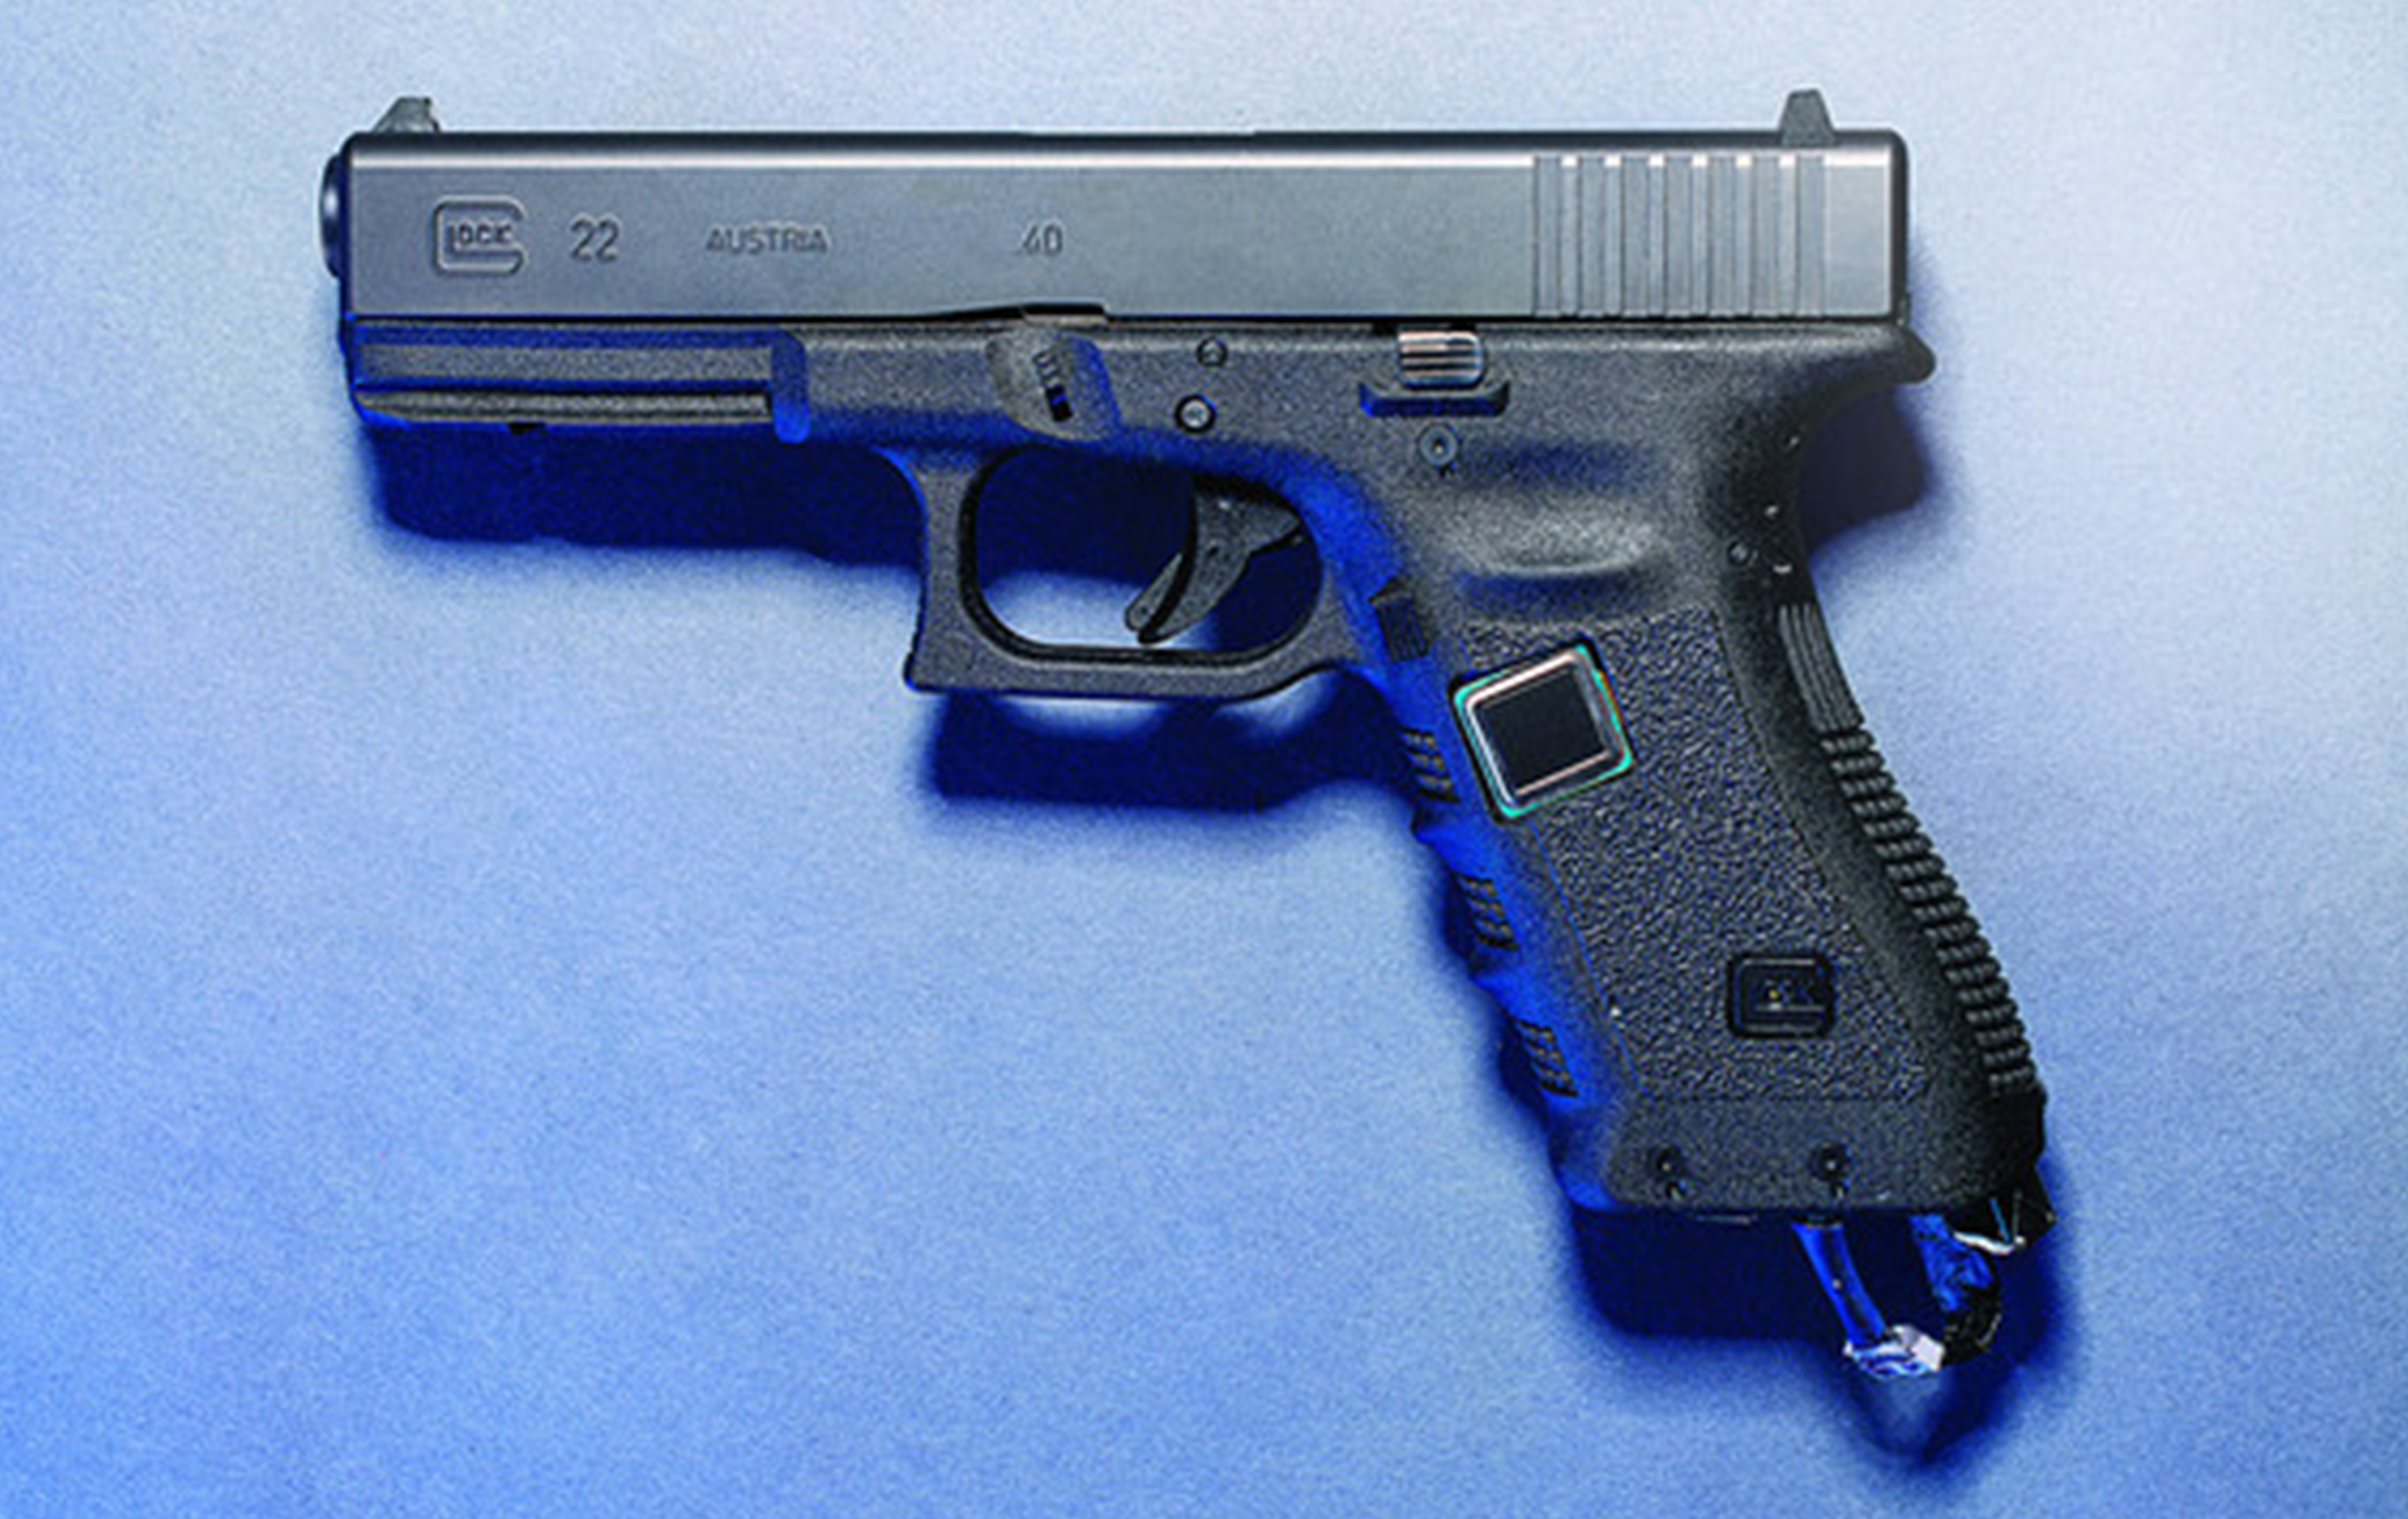 One of the guns on the market with fingerprint access technology (Image credit: Matt Nager/Wall Street Journal)